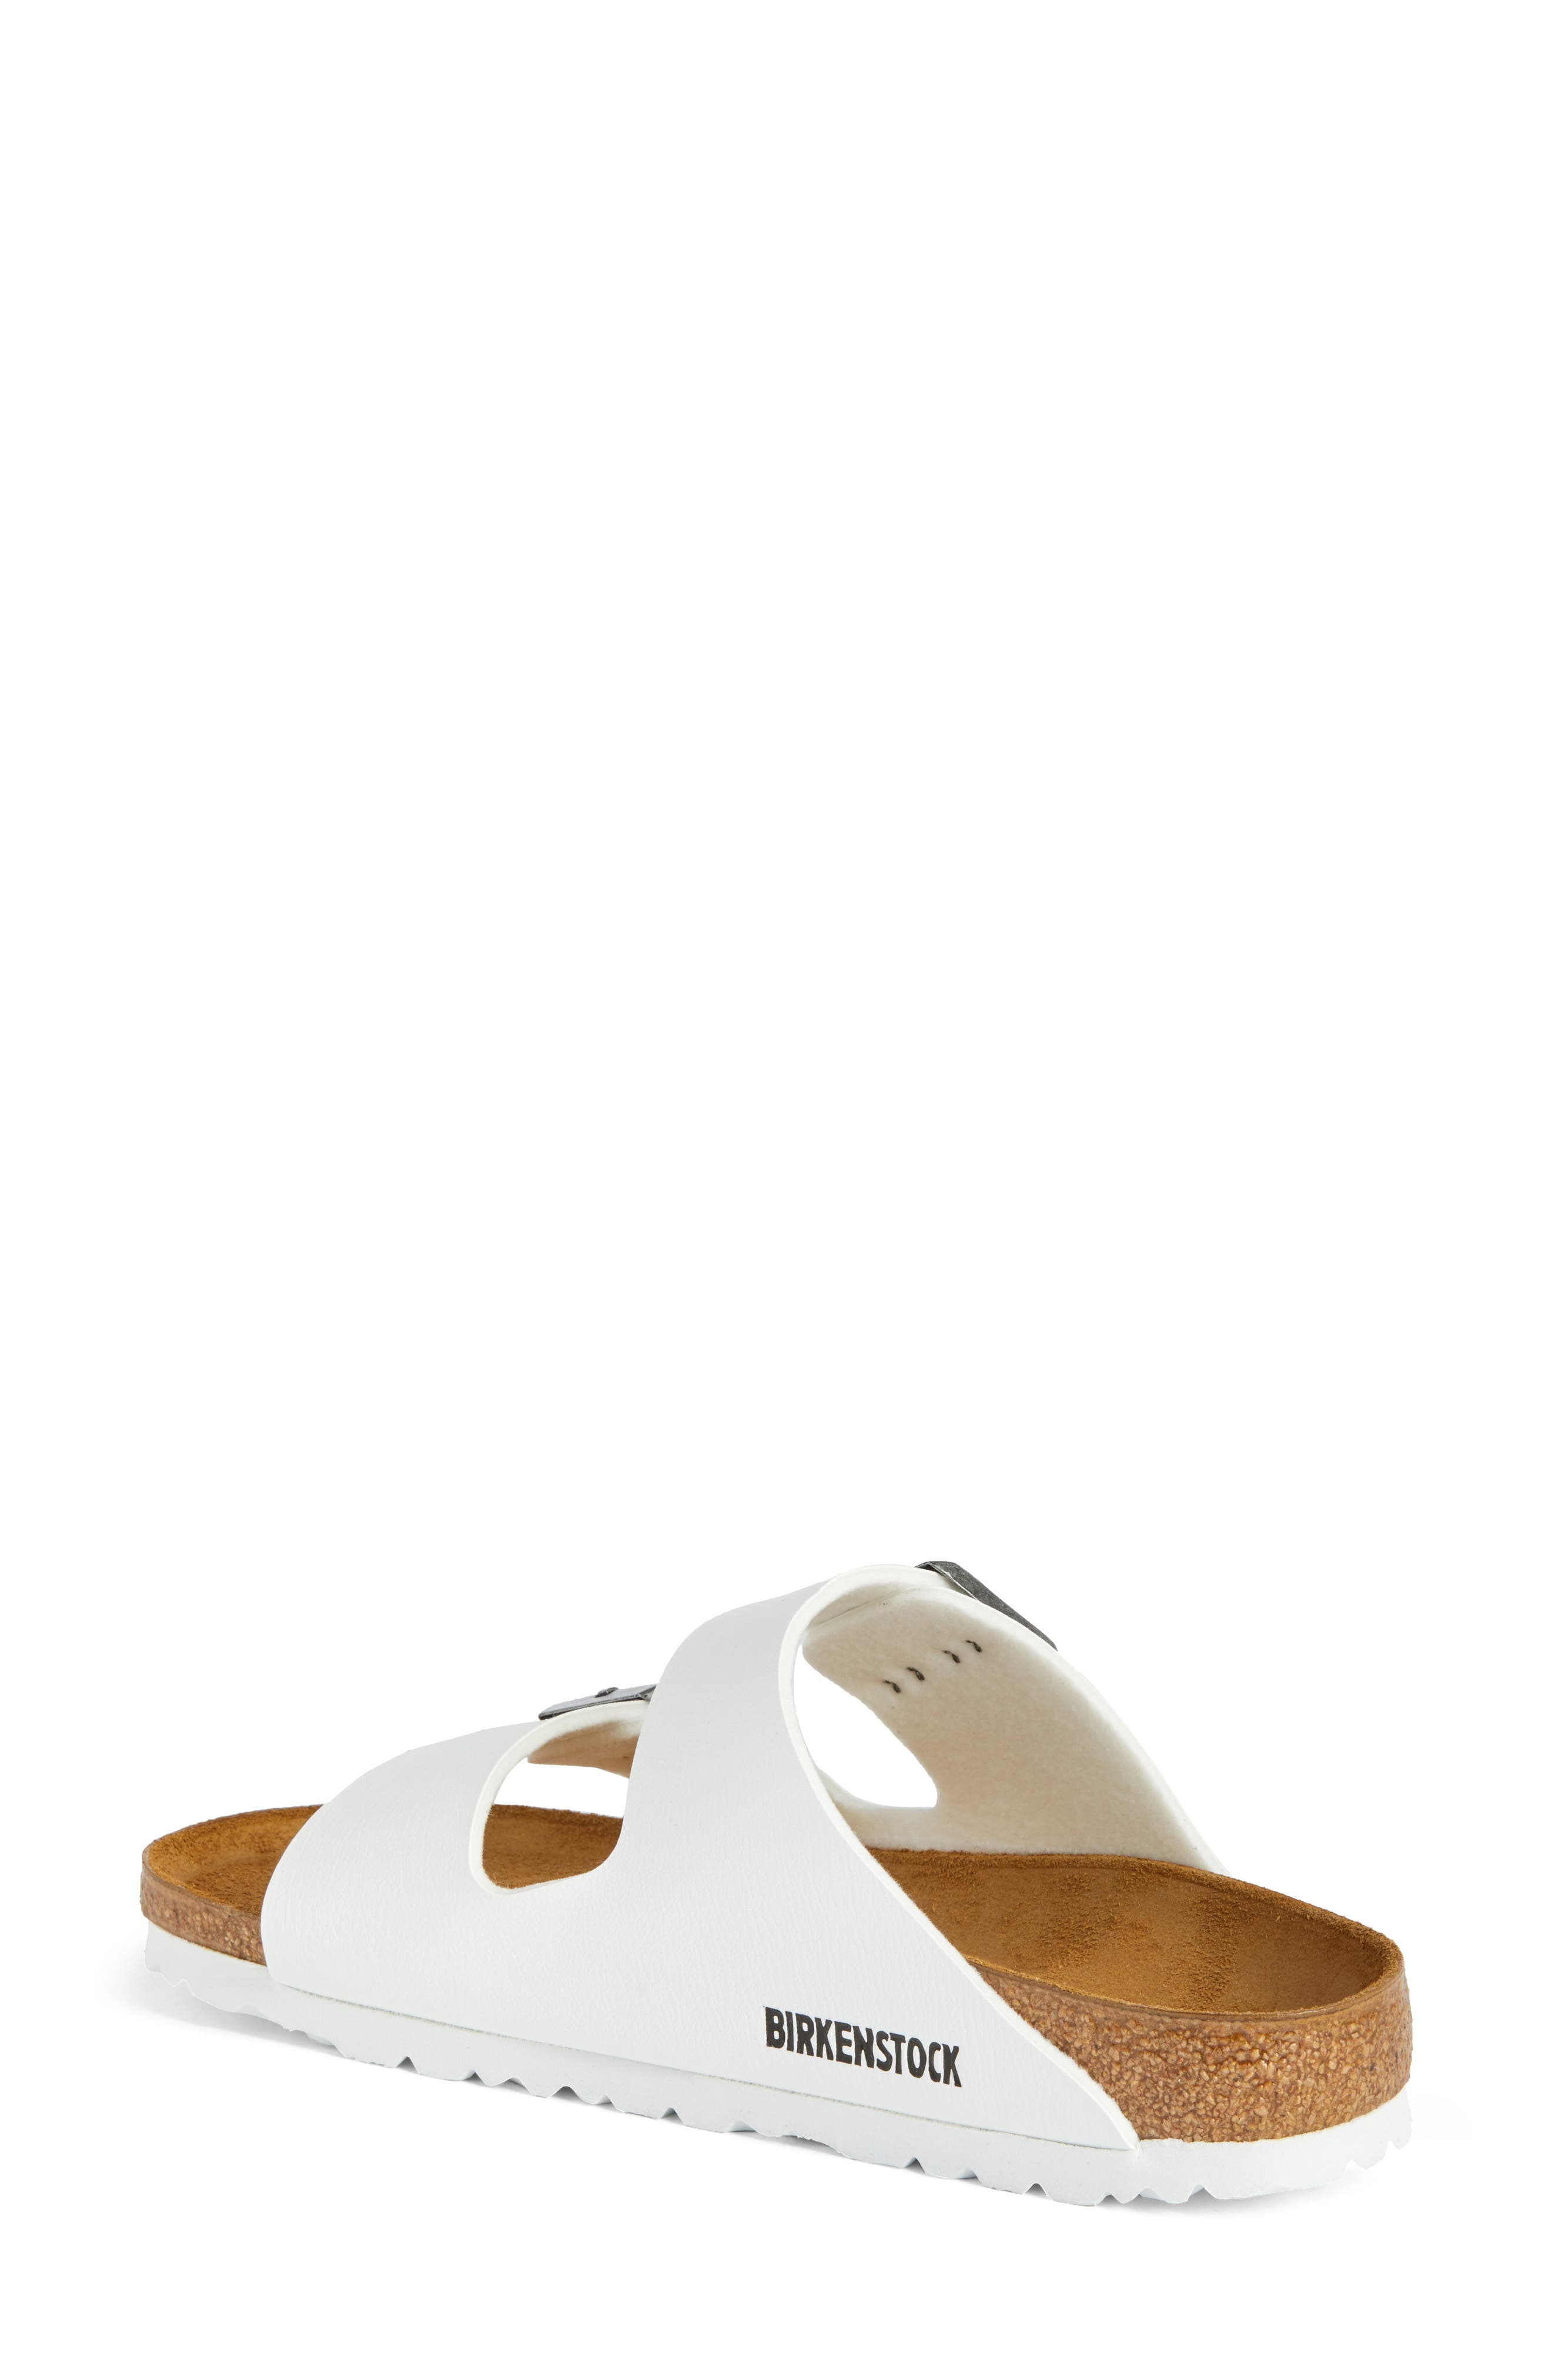 'Arizona' White Birko-Flor Sandal,                             Alternate thumbnail 3, color,                             WHITE SYNTHETIC LEATHER